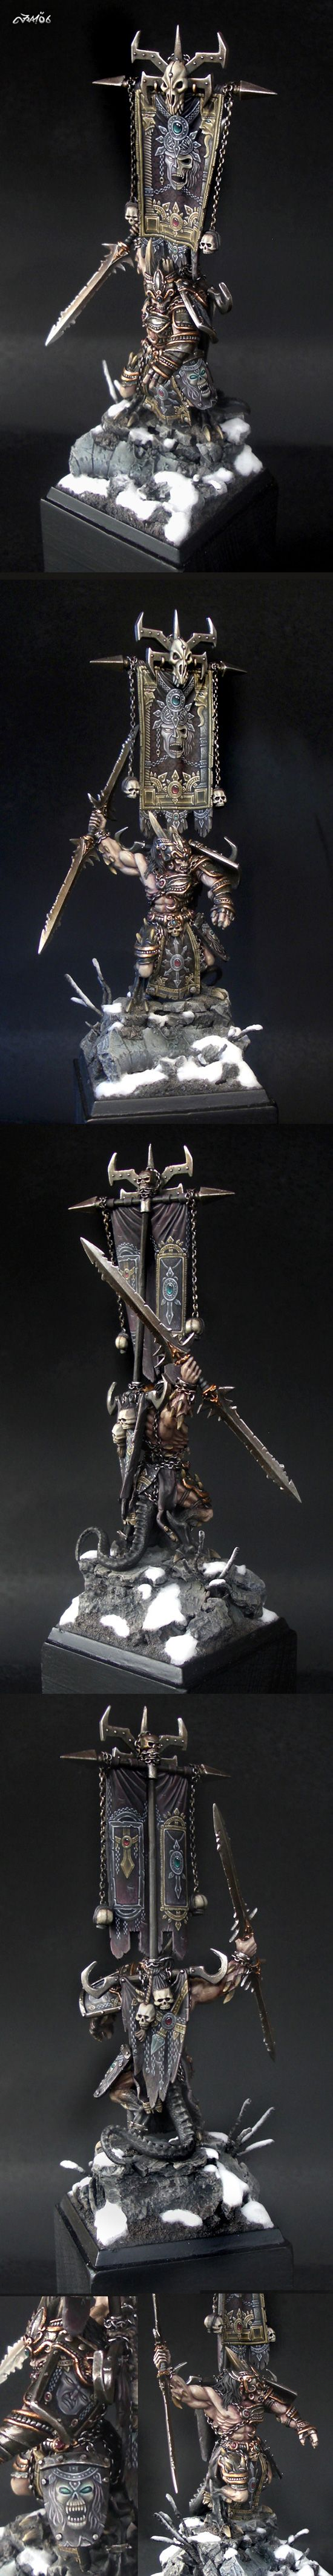 Antarlatoteph, the dark ancient :( ITALIAN DEMON SLAYER SWORD WINNERS 2006) img.1